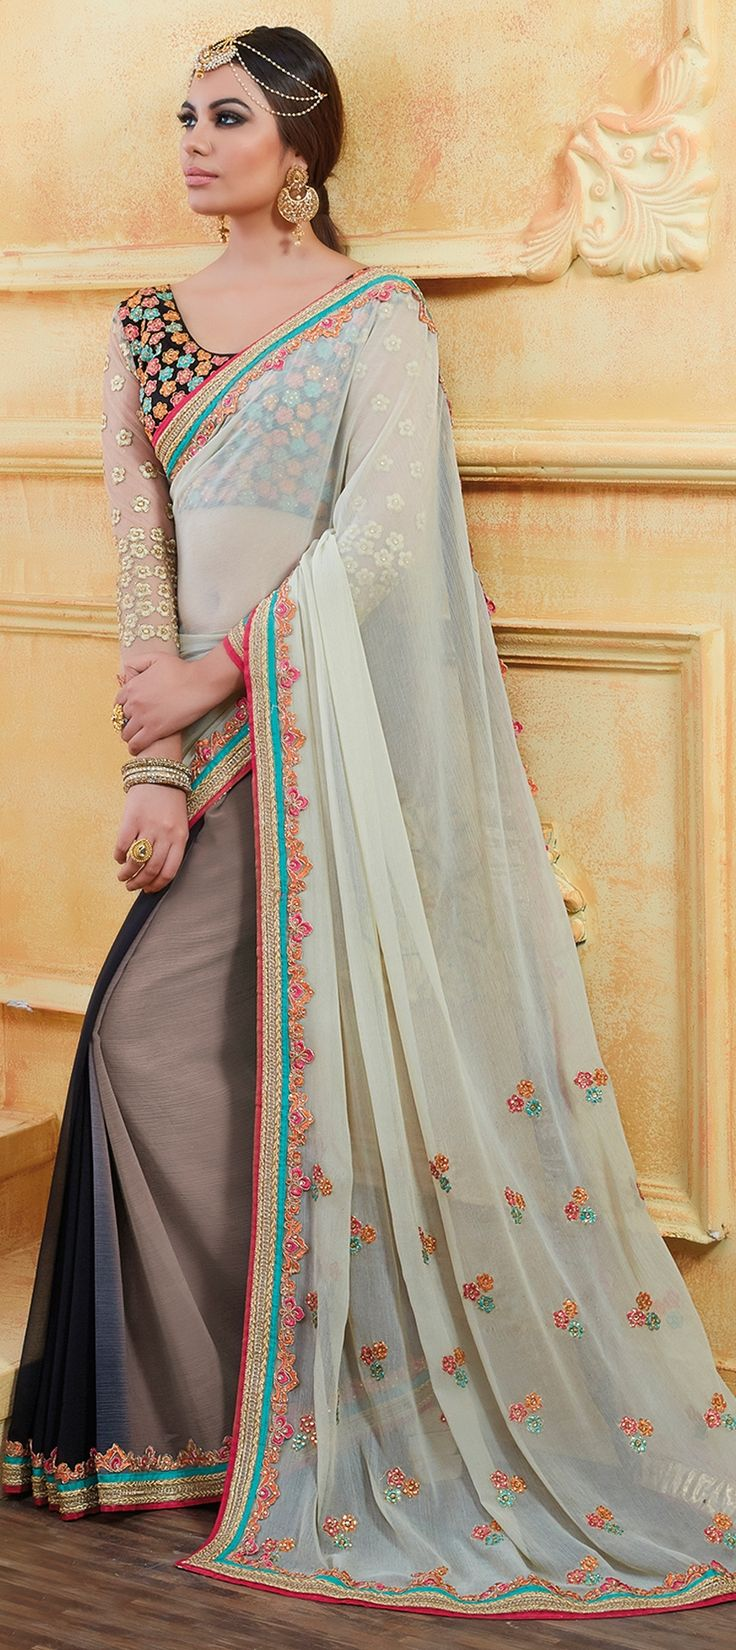 752805 Beige and Brown, White and Off White color family Embroidered Sarees, Party Wear Sarees in Georgette fabric with Lace, Machine Embroidery, Resham, Thread work with matching unstitched blouse.